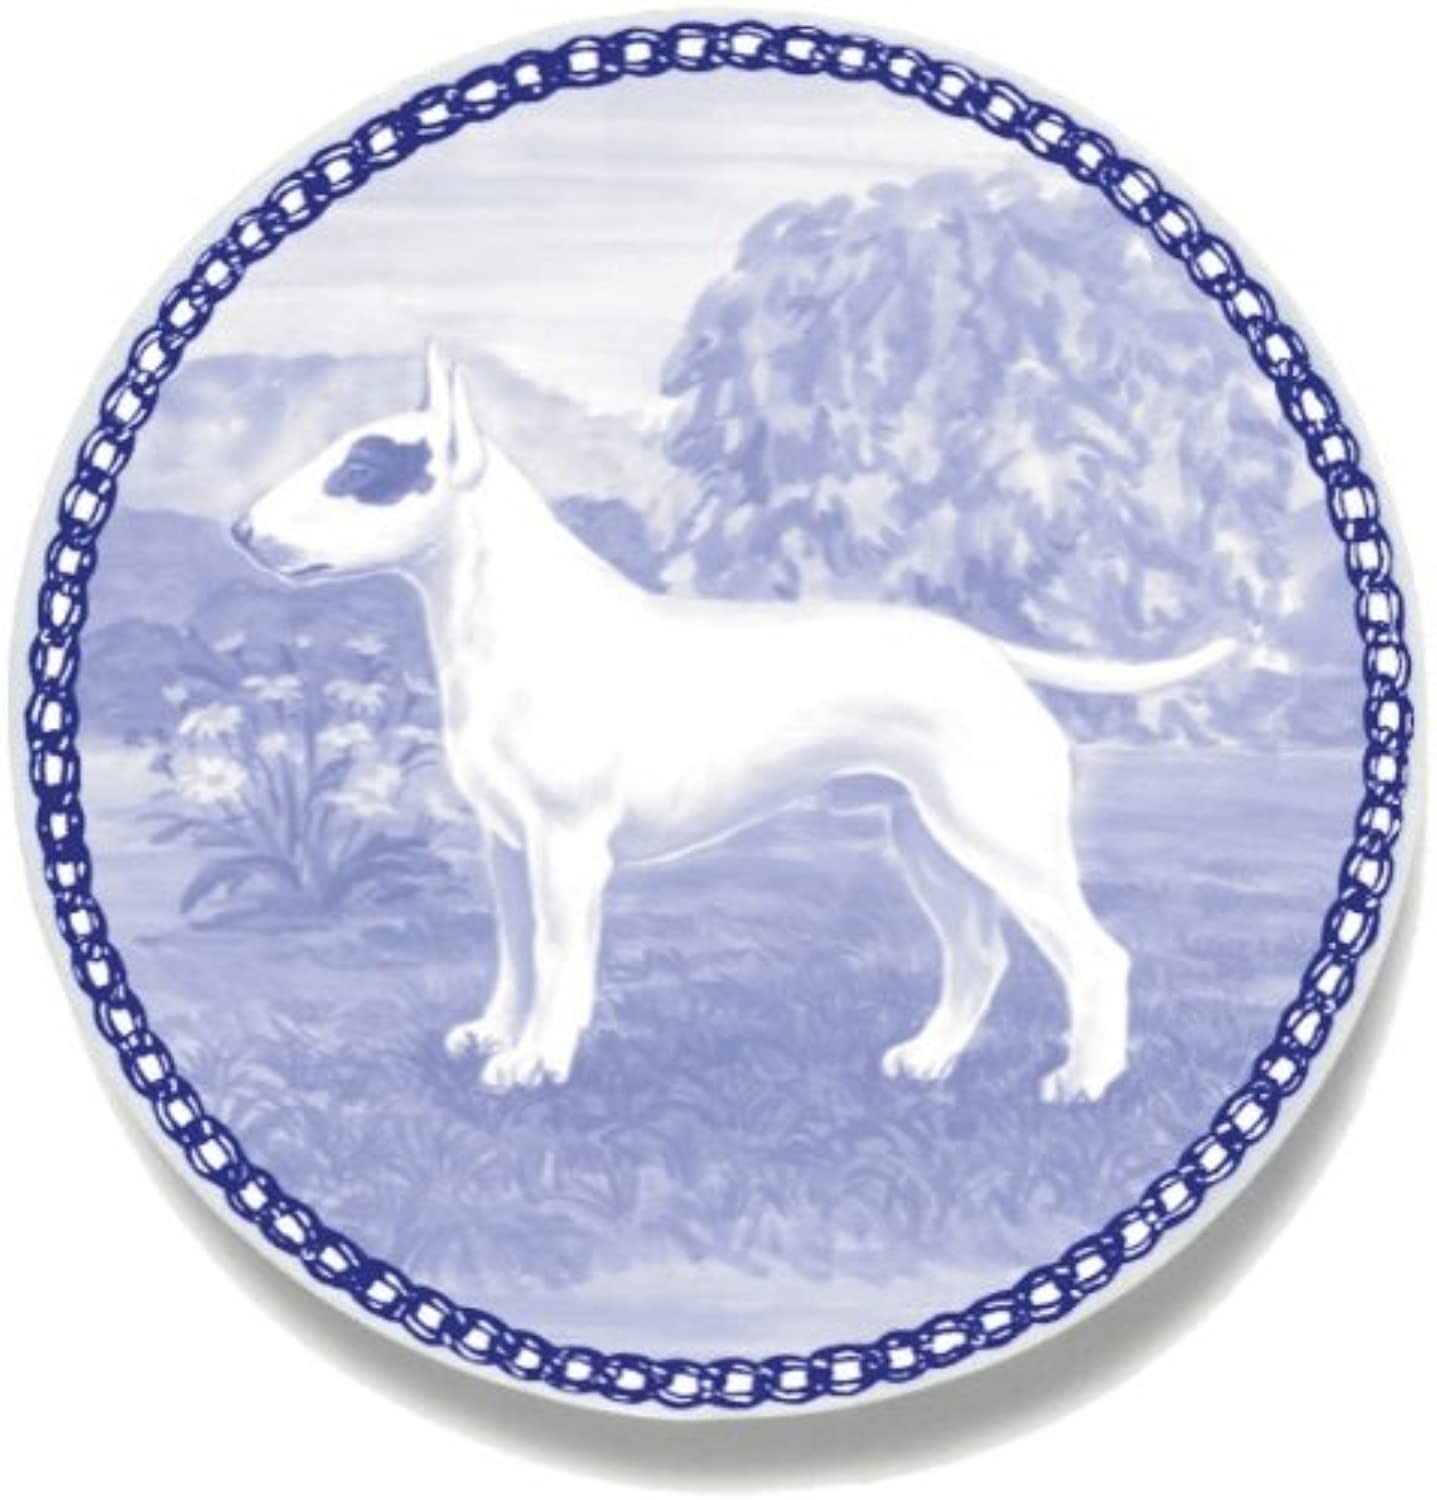 Bull Terrier Lekven Design Dog Plate 19.5 cm  7.61 inches Made in Denmark NEW with certificate of origin PLATE  7477